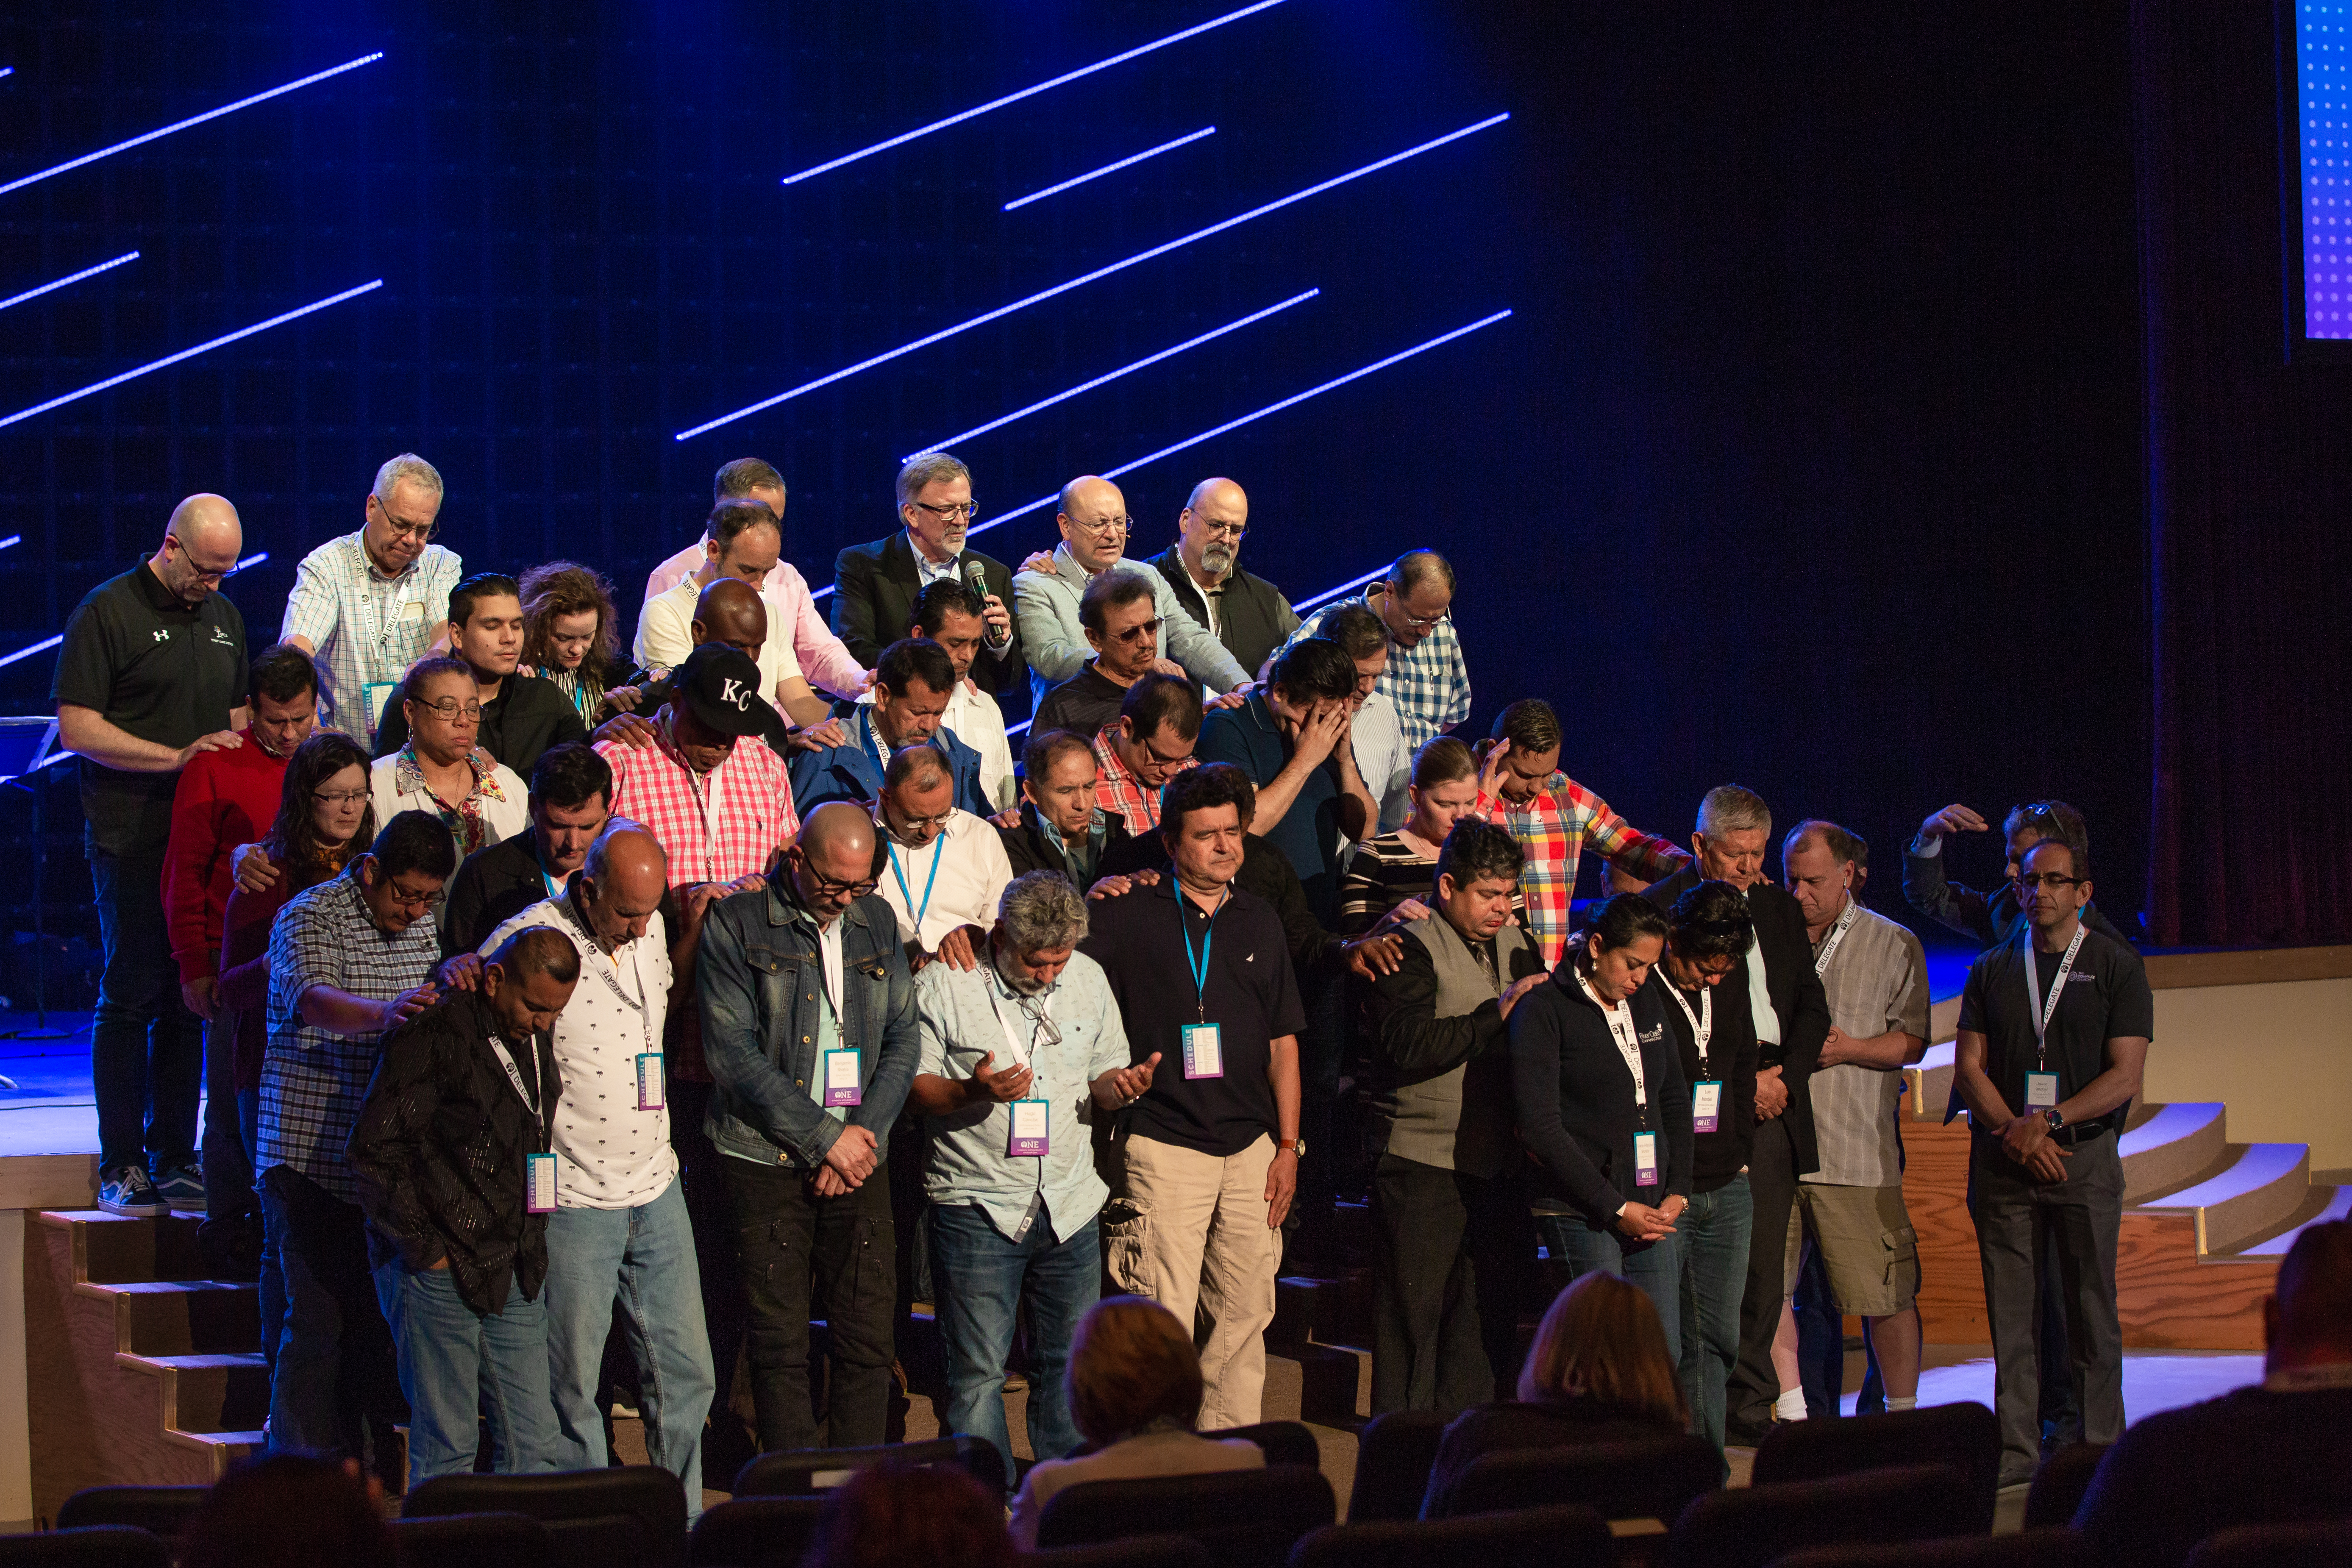 All People Prayer at EFCA One